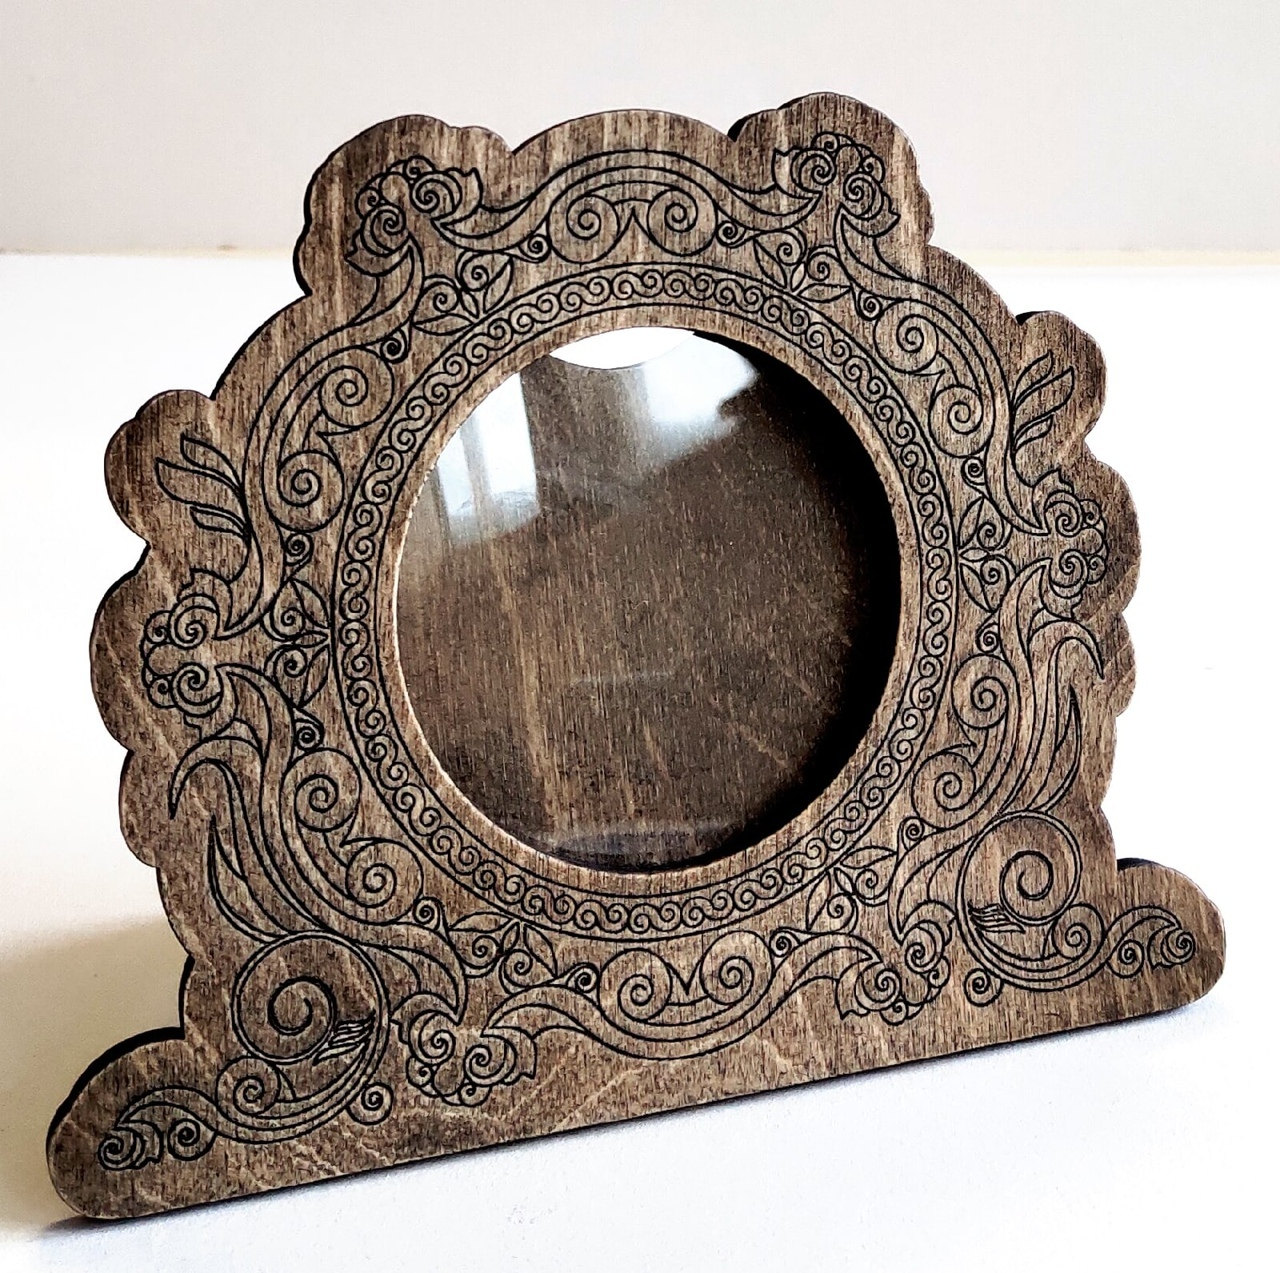 Laser Cut Round Wooden Photo Frame Decorative Engraved Free CDR Vectors Art